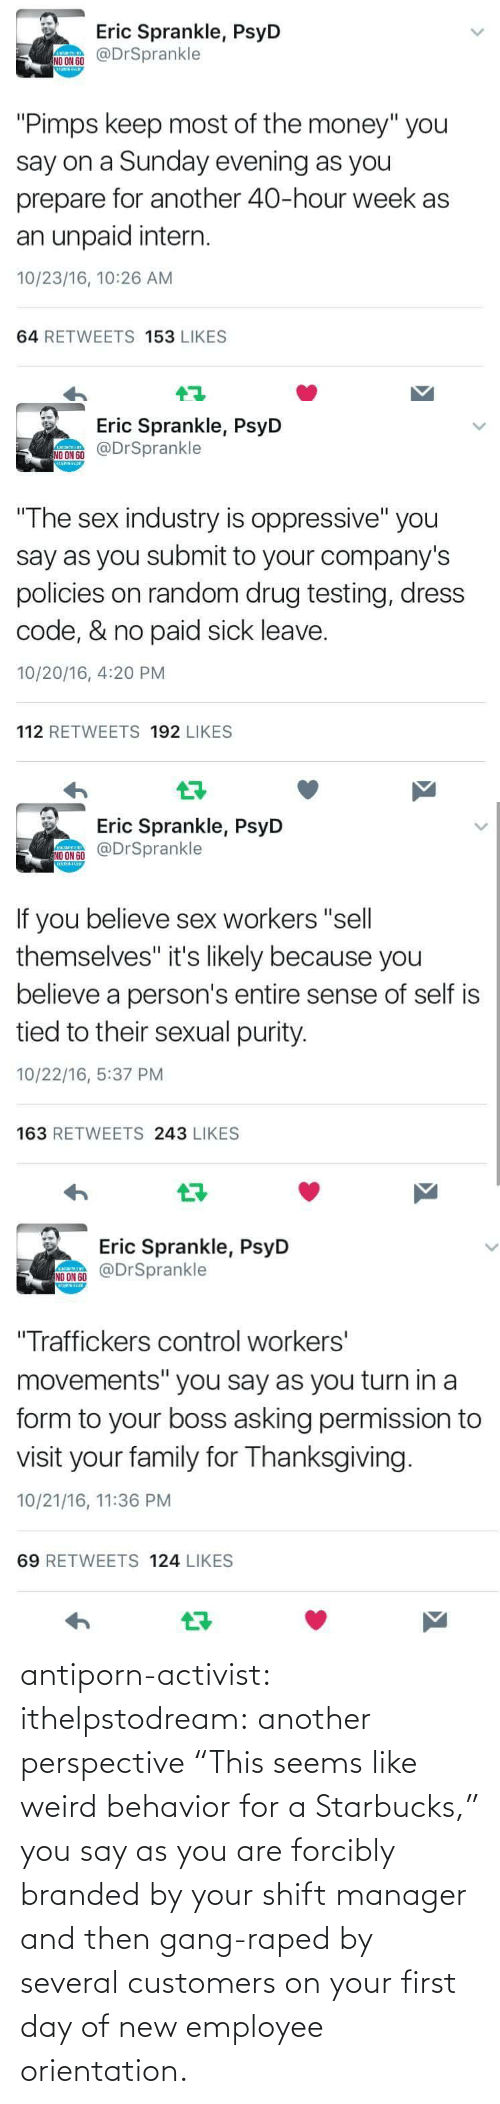 "Employee: antiporn-activist:  ithelpstodream: another perspective ""This seems like weird behavior for a Starbucks,"" you say as you are forcibly branded by your shift manager and then gang-raped by several customers on your first day of new employee orientation."